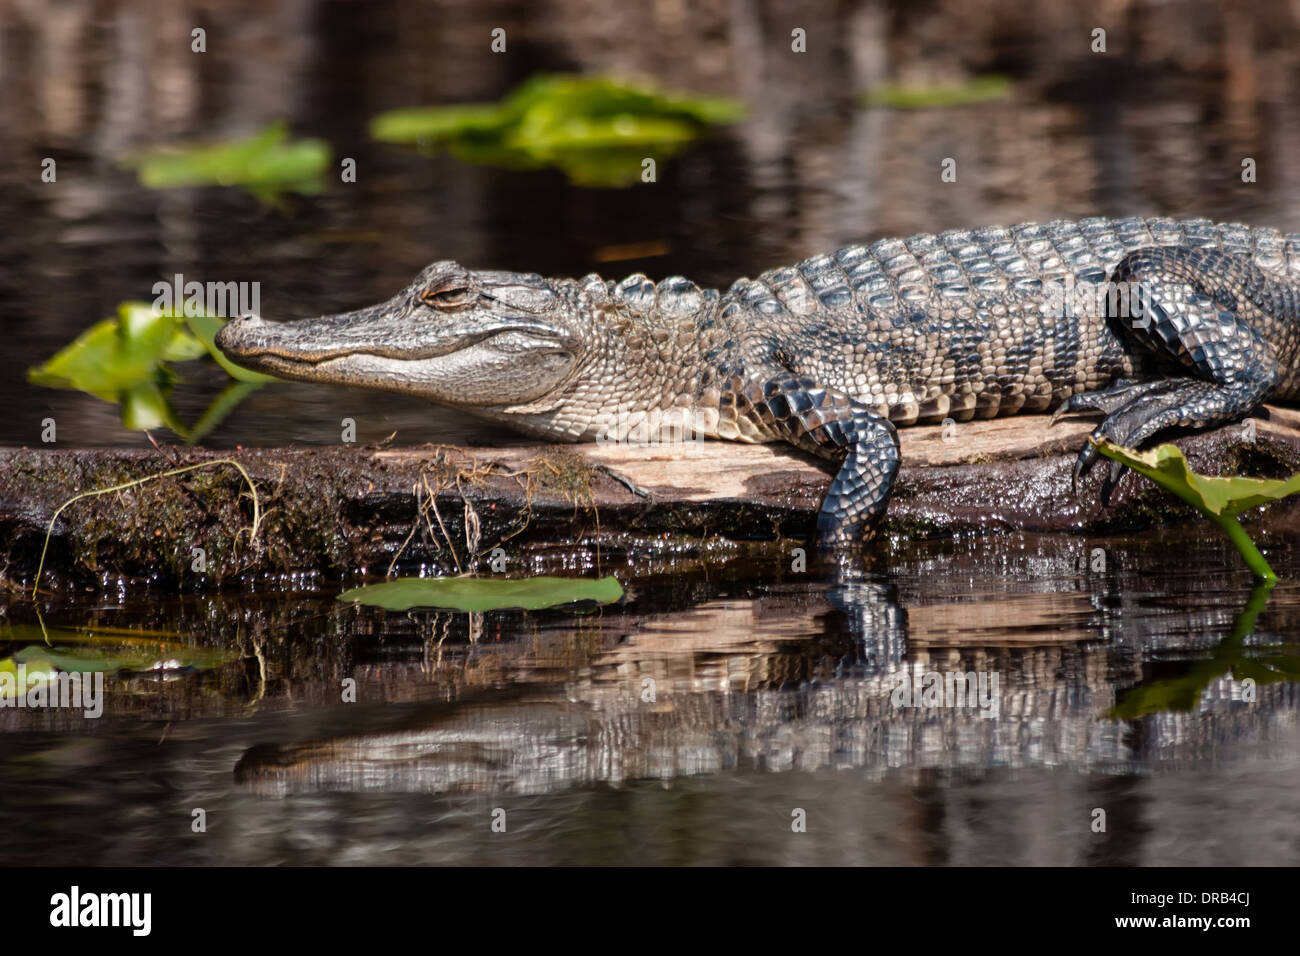 An American alligator (Alligator mississippiensis) warming itself by sitting in the sun in a swamp. - Stock Image